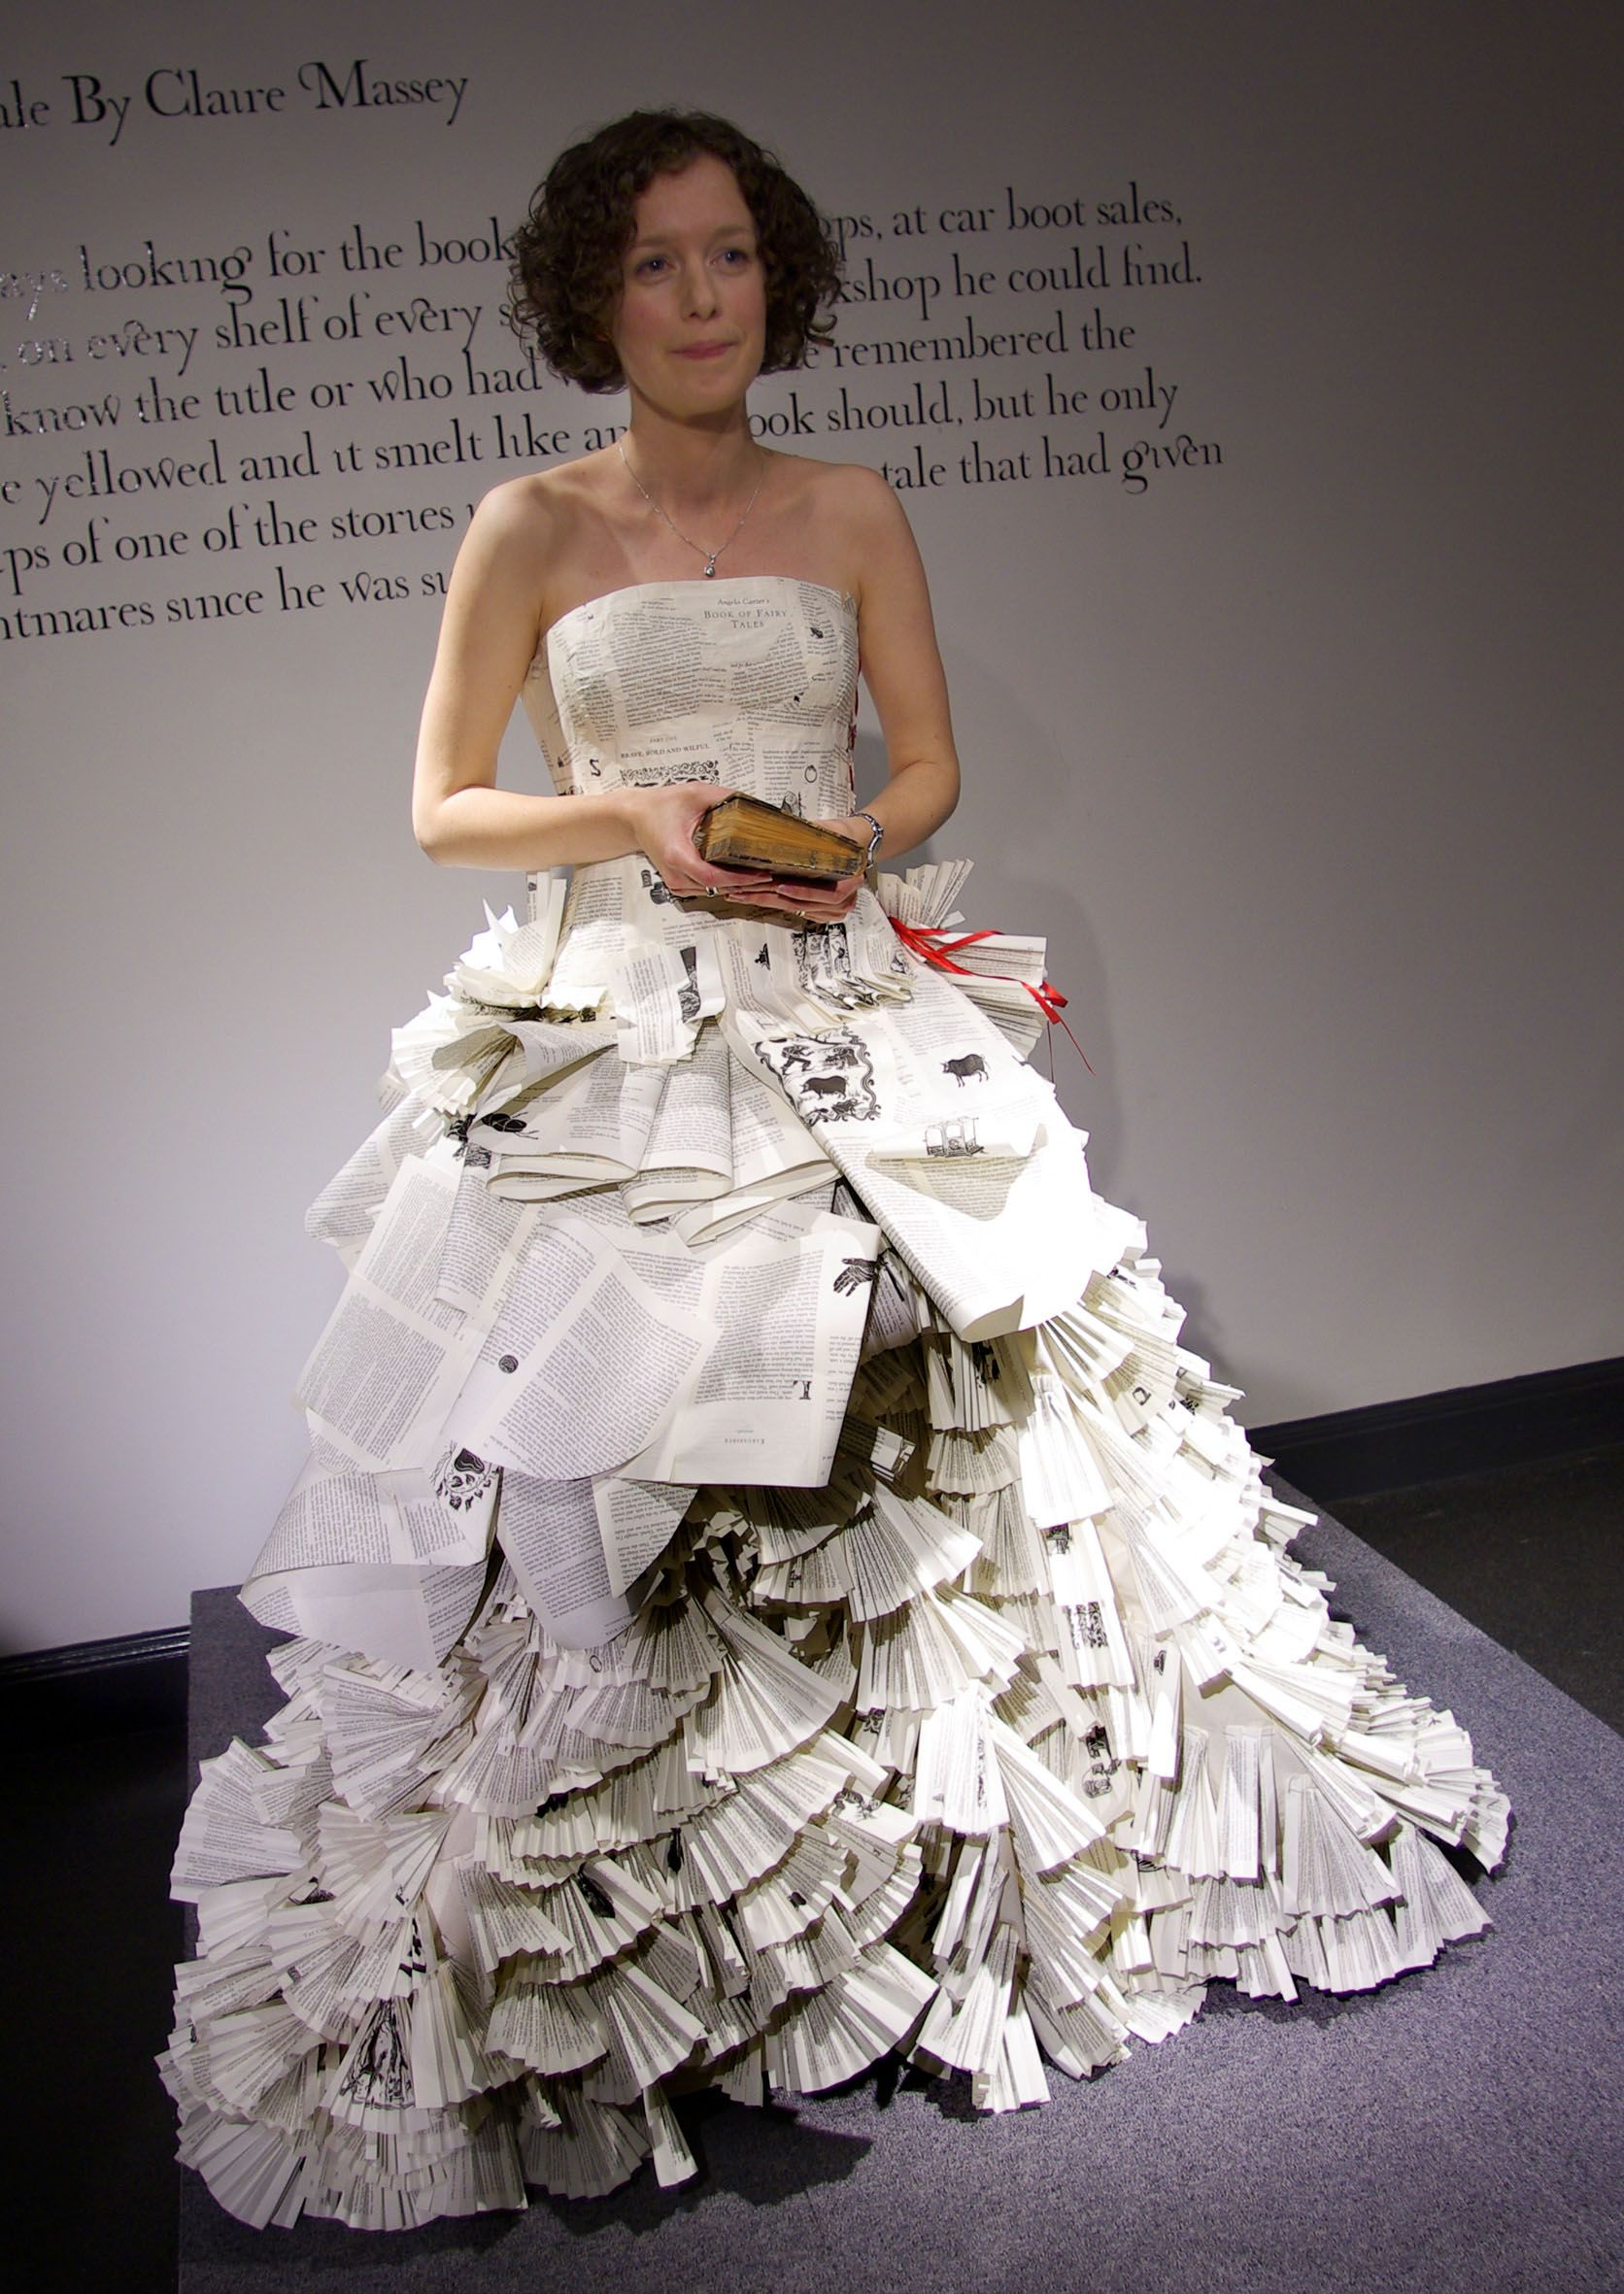 Custom Made Dress From Over 2500 Pages Multiple Copies Of The Recently Reissued Angela Carter S Book Fairy Tales Designed And Hand Crafted